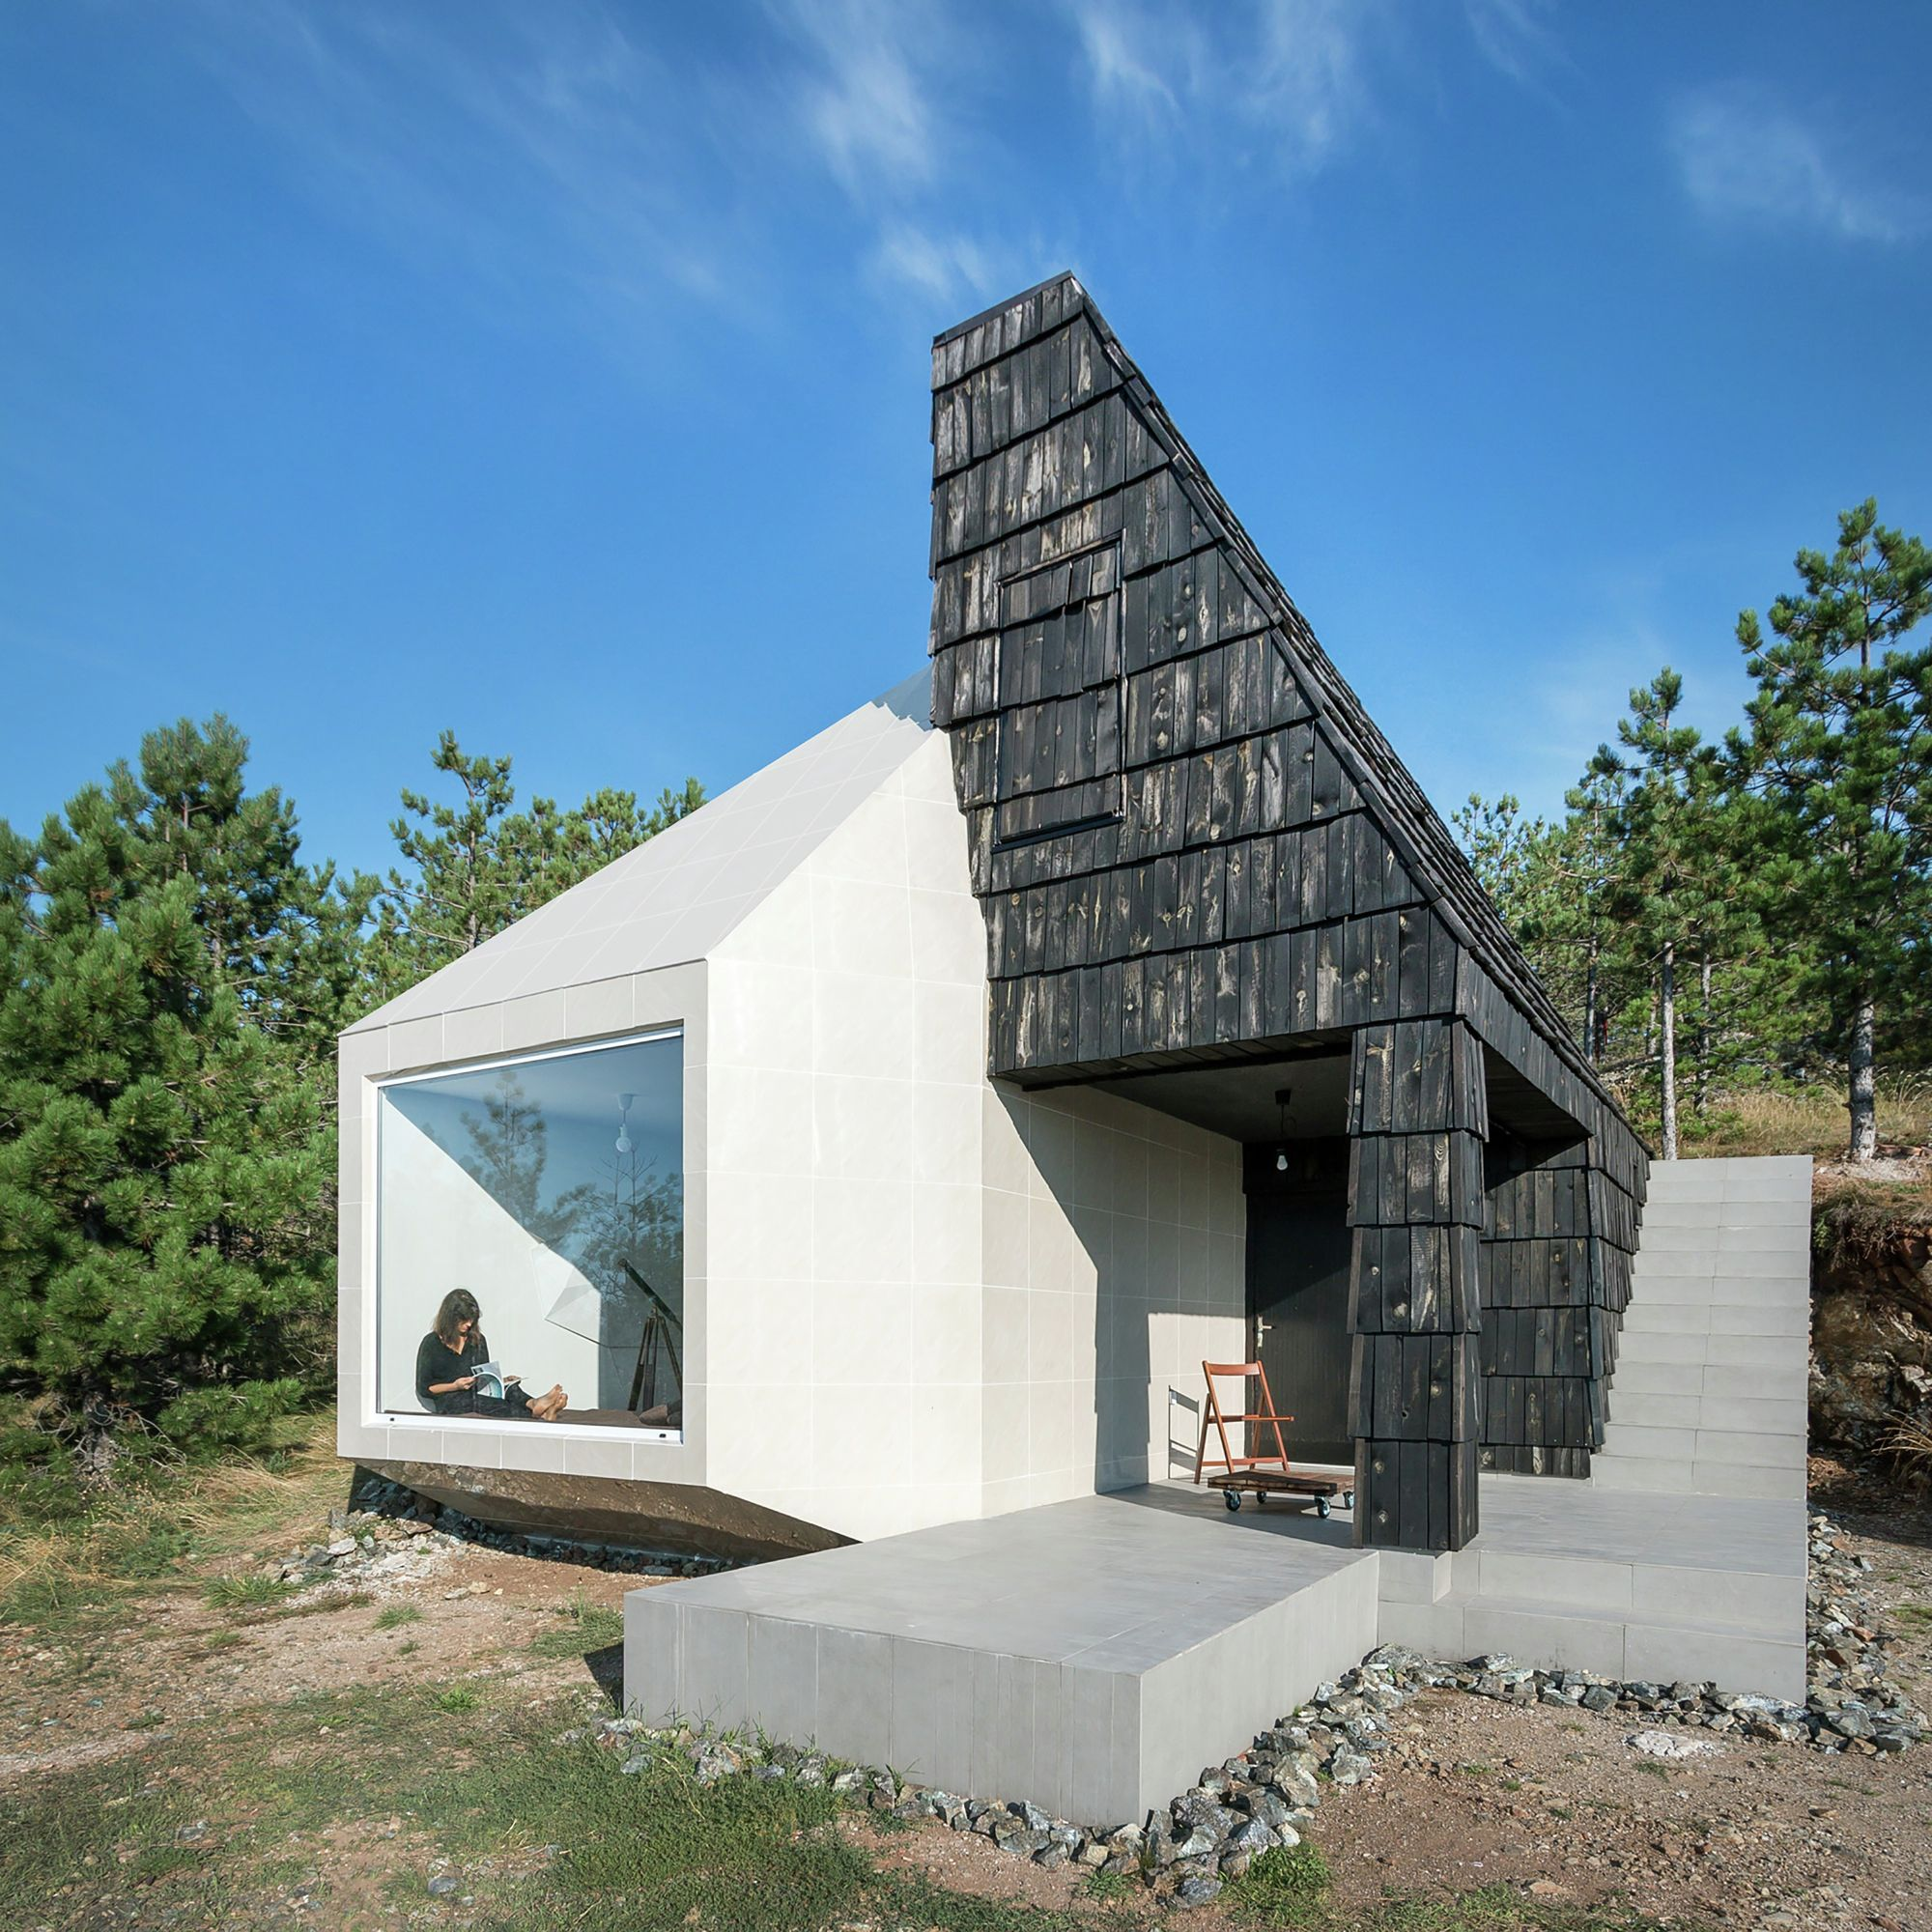 completed in 2015 in divibare serbia images by relja ivani the house is - Contemporary Small Houses